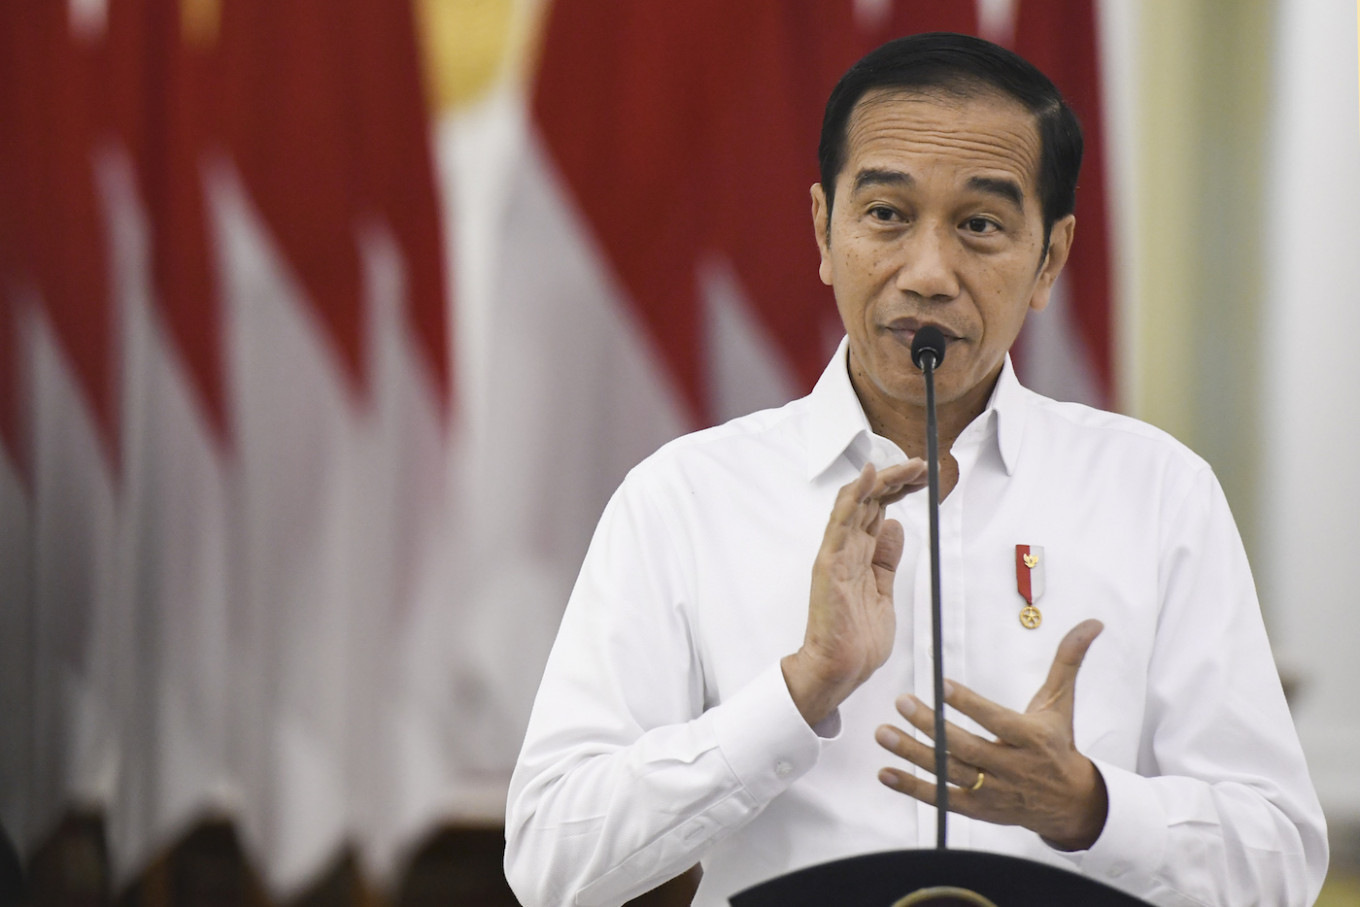 Jokowi declares COVID-19 health emergency, imposes large-scale social restrictions